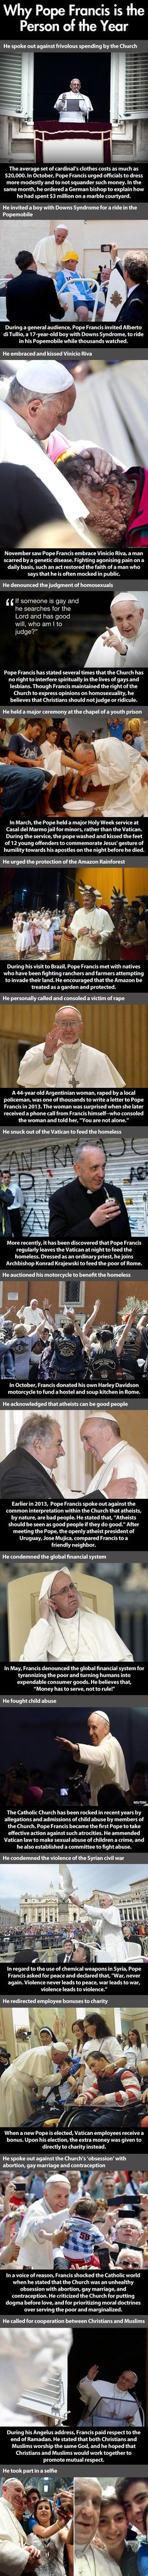 finally there is a good man in this seat of power....I love Pope Francis!!!!!!